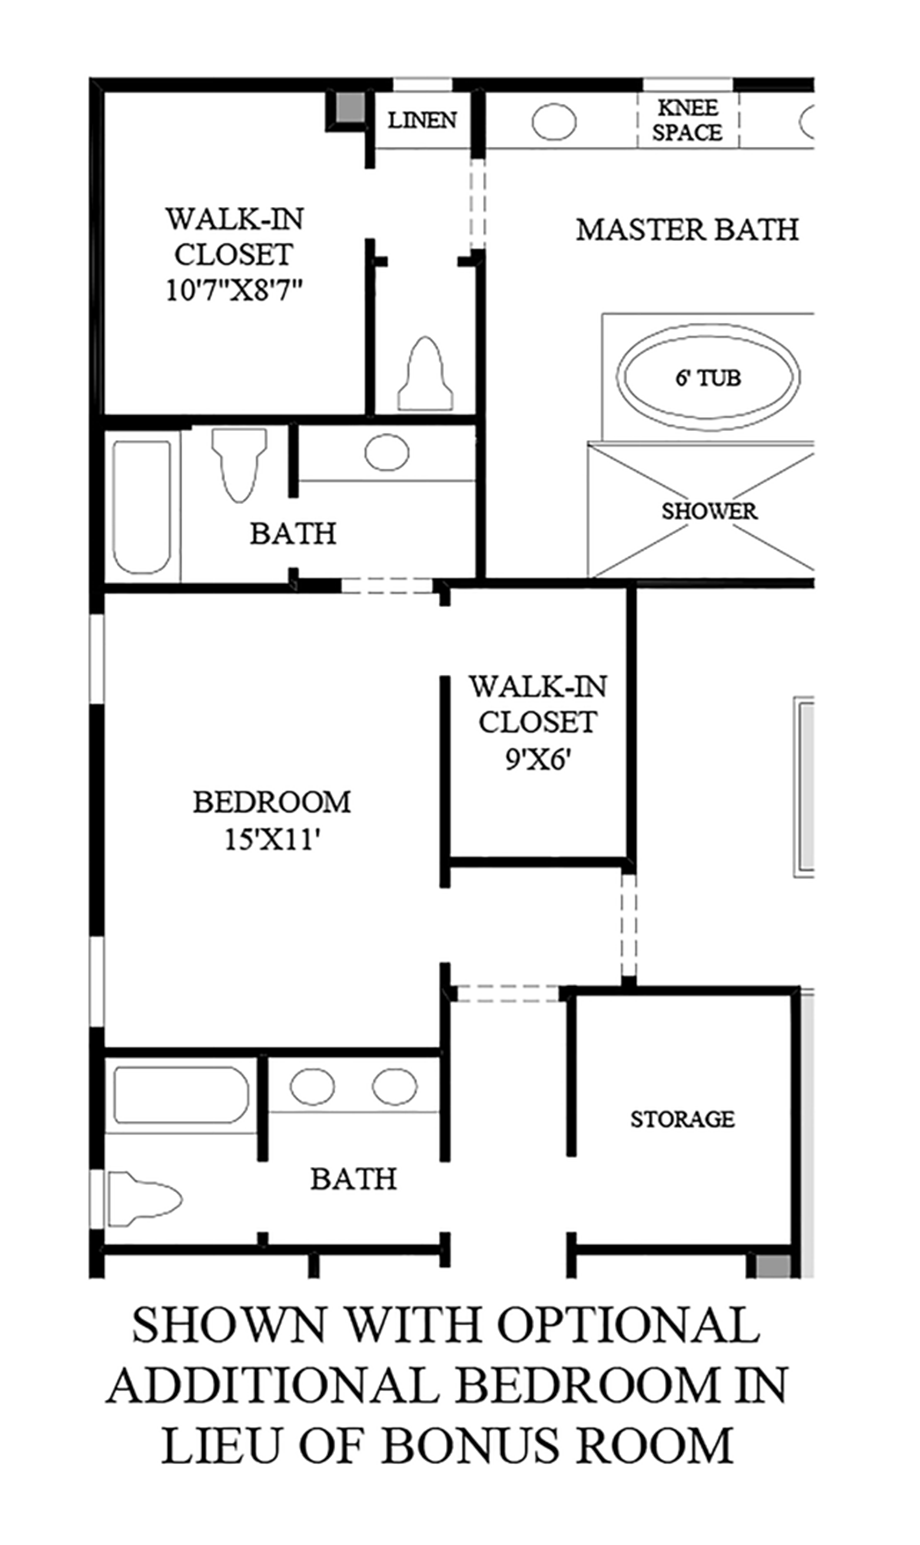 Optional Additional Bedroom in lieu of Bonus Room Floor Plan